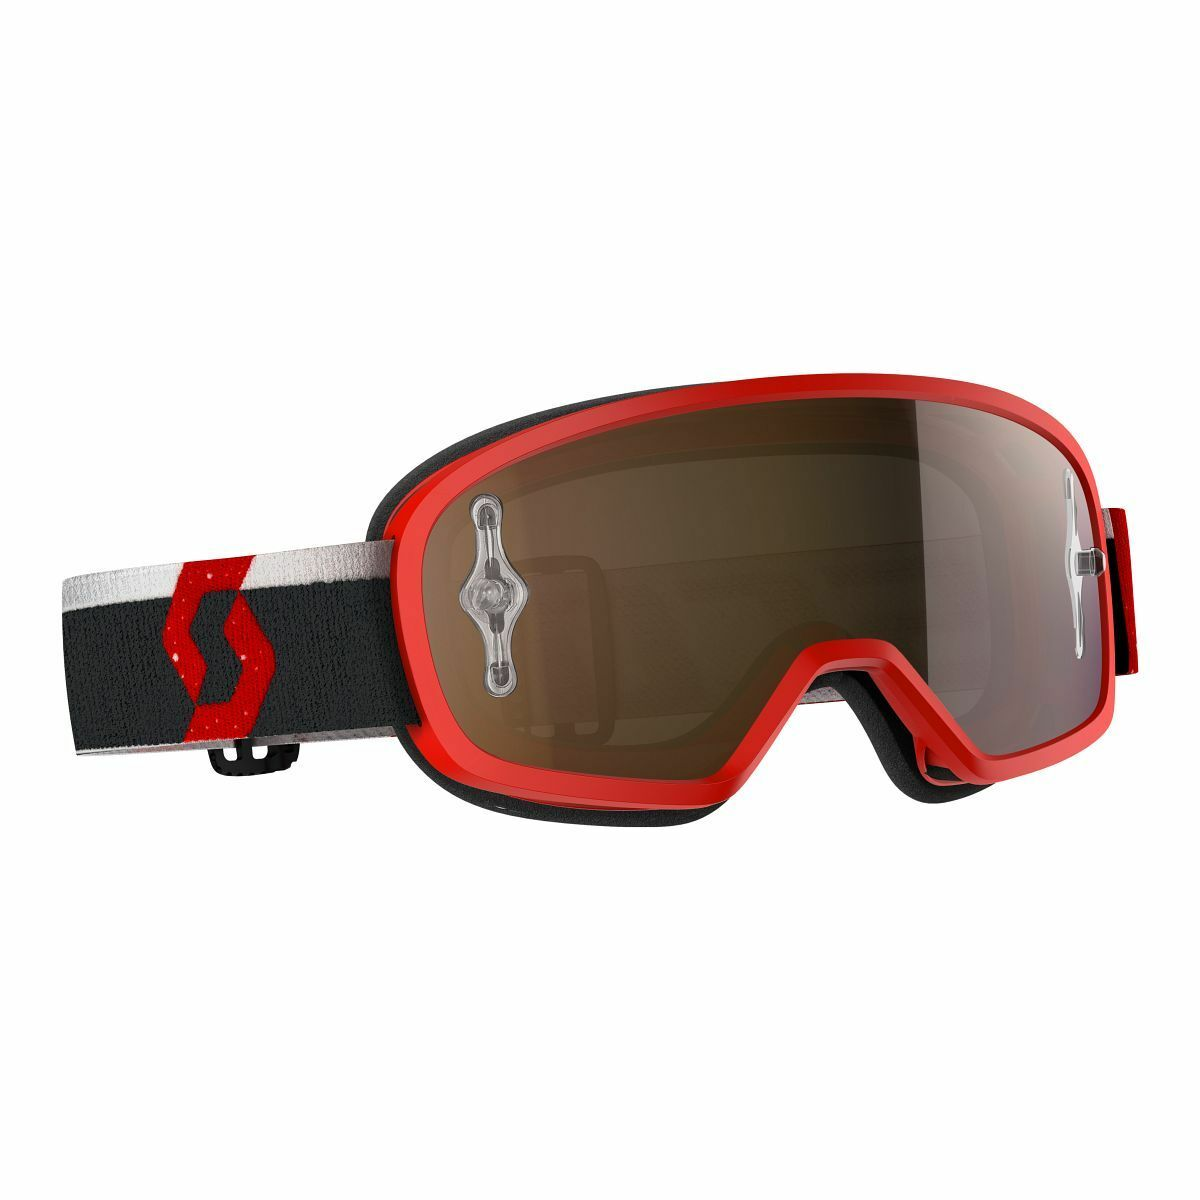 Scott Buzz Pro Kinder MX Goggle Cross MTB Brille red goldfarben chrome works